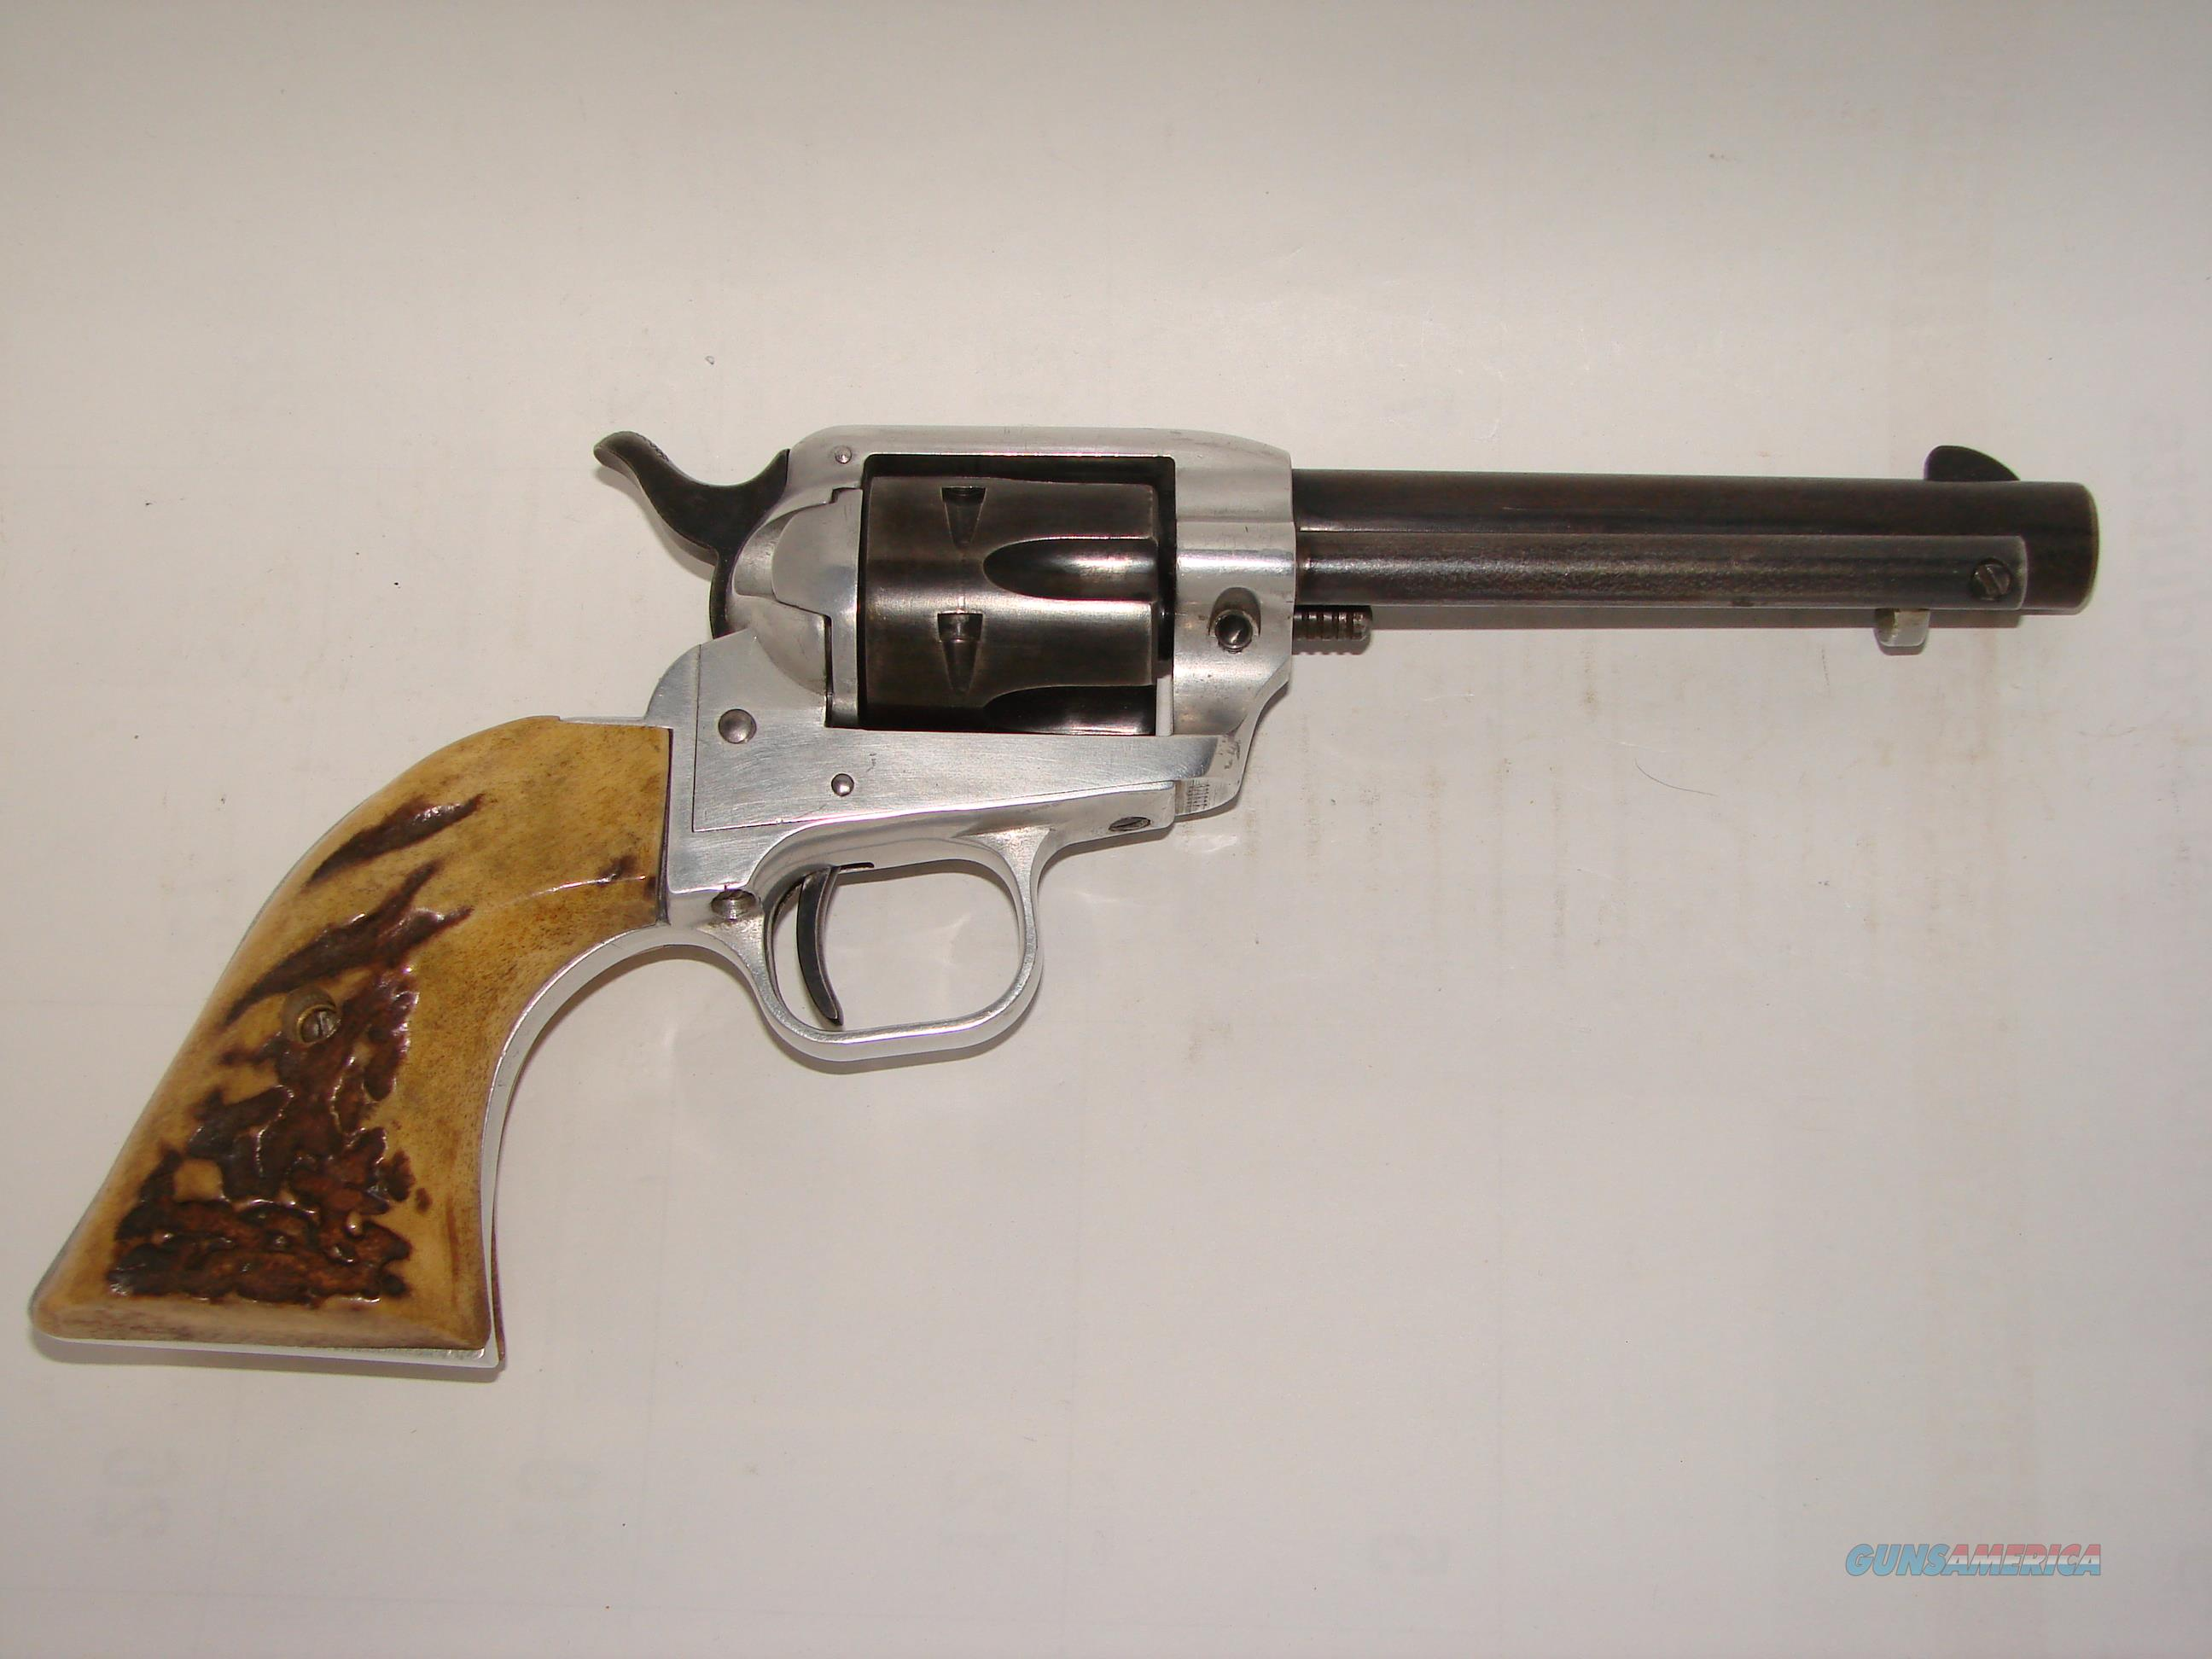 Colt Scout 22LR  Guns > Pistols > Colt Single Action Revolvers - Modern (22 Cal.)